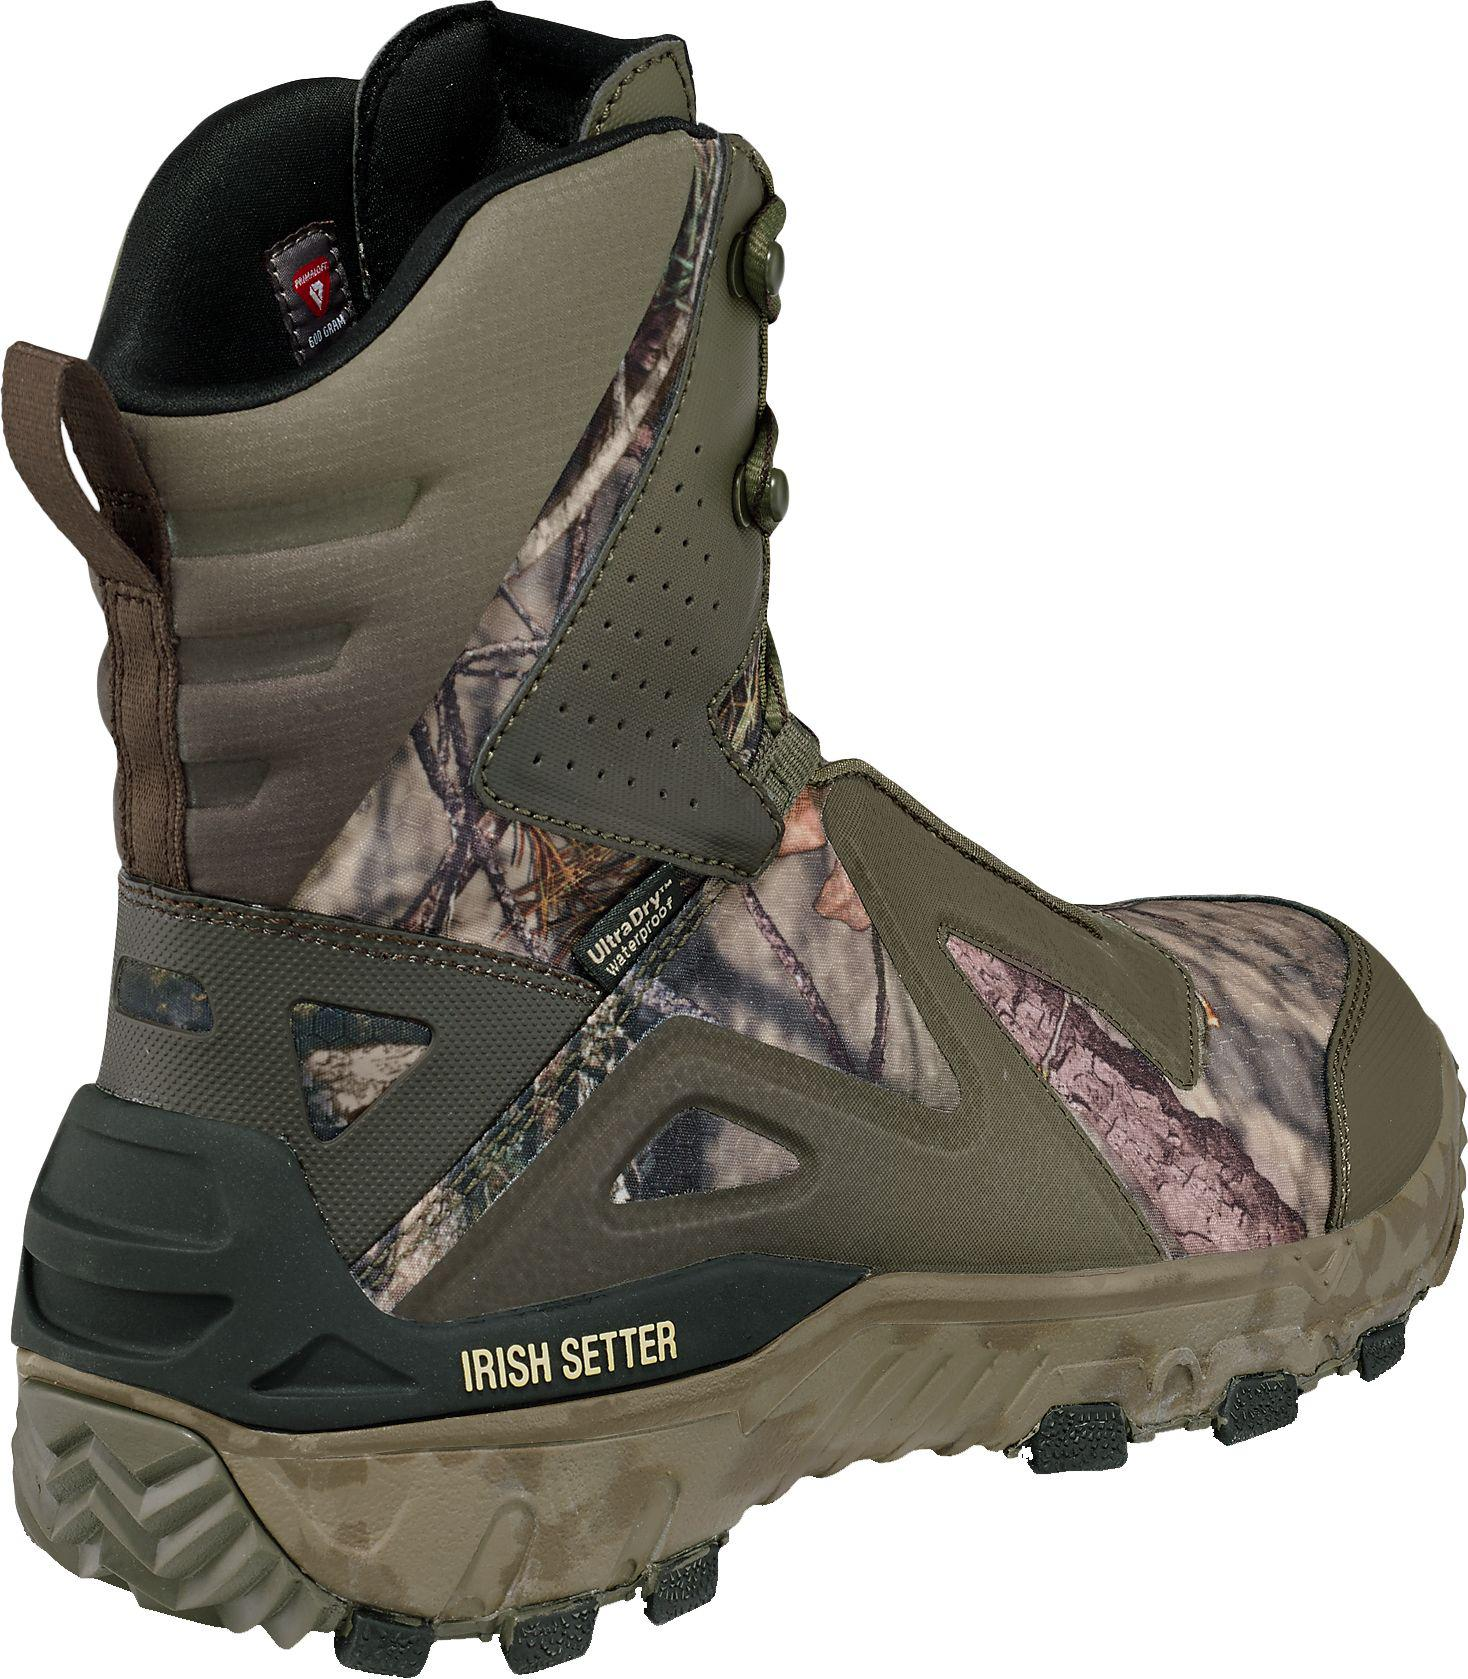 4afe710b8 Irish Setter Vaprtrek Ls 800g Waterproof Field Hunting Boots for Men - Lyst